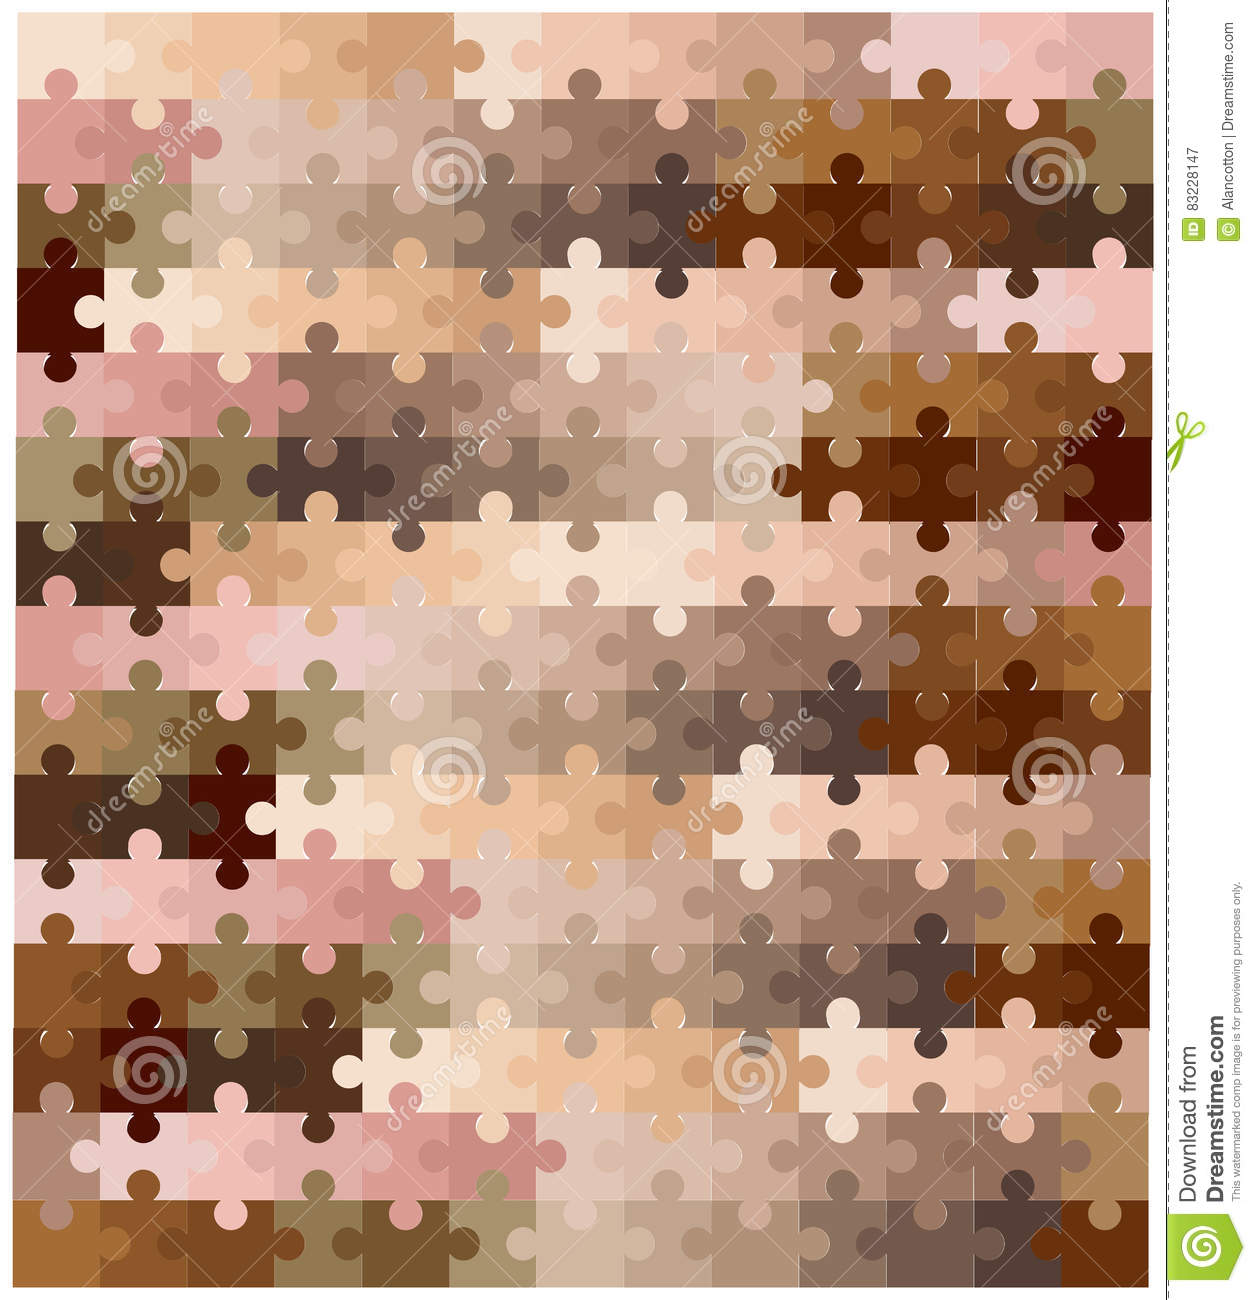 Skin Tone Jigsaw Pieces Stock Vector Illustration Of